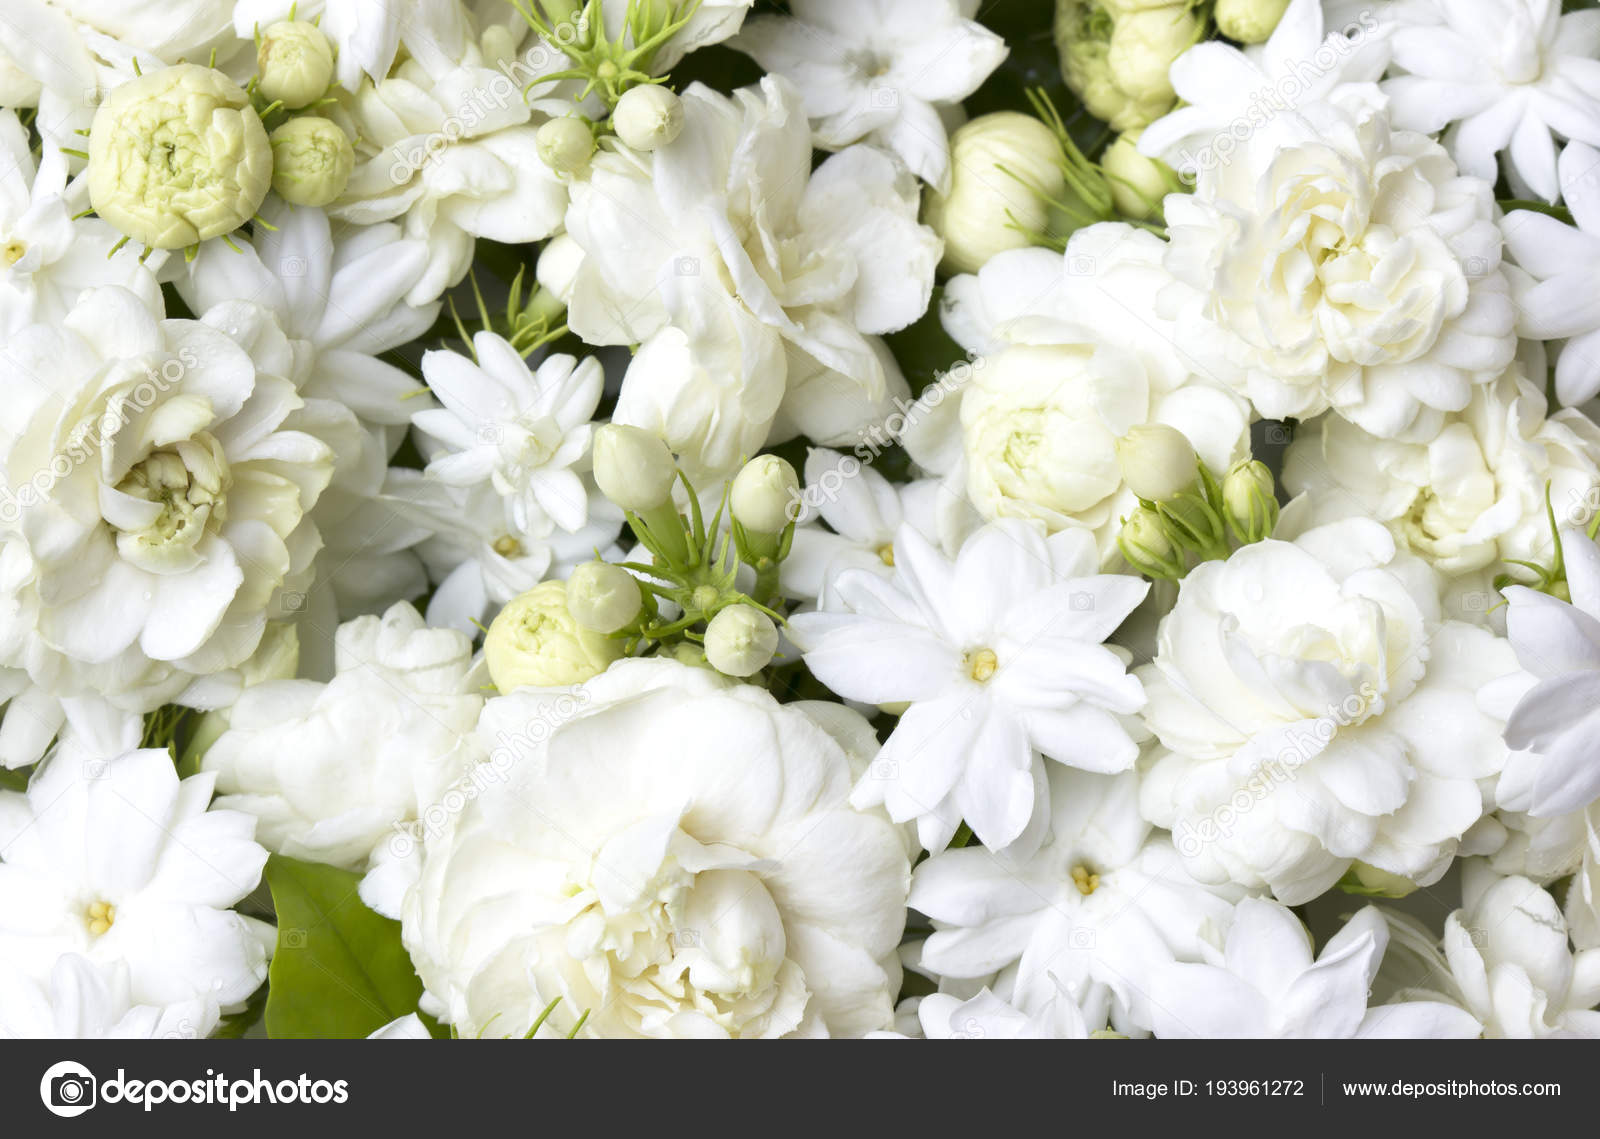 White jasmine flowers fresh flowers stock photo scenery1 193961272 white jasmine flowers fresh flowers stock photo izmirmasajfo